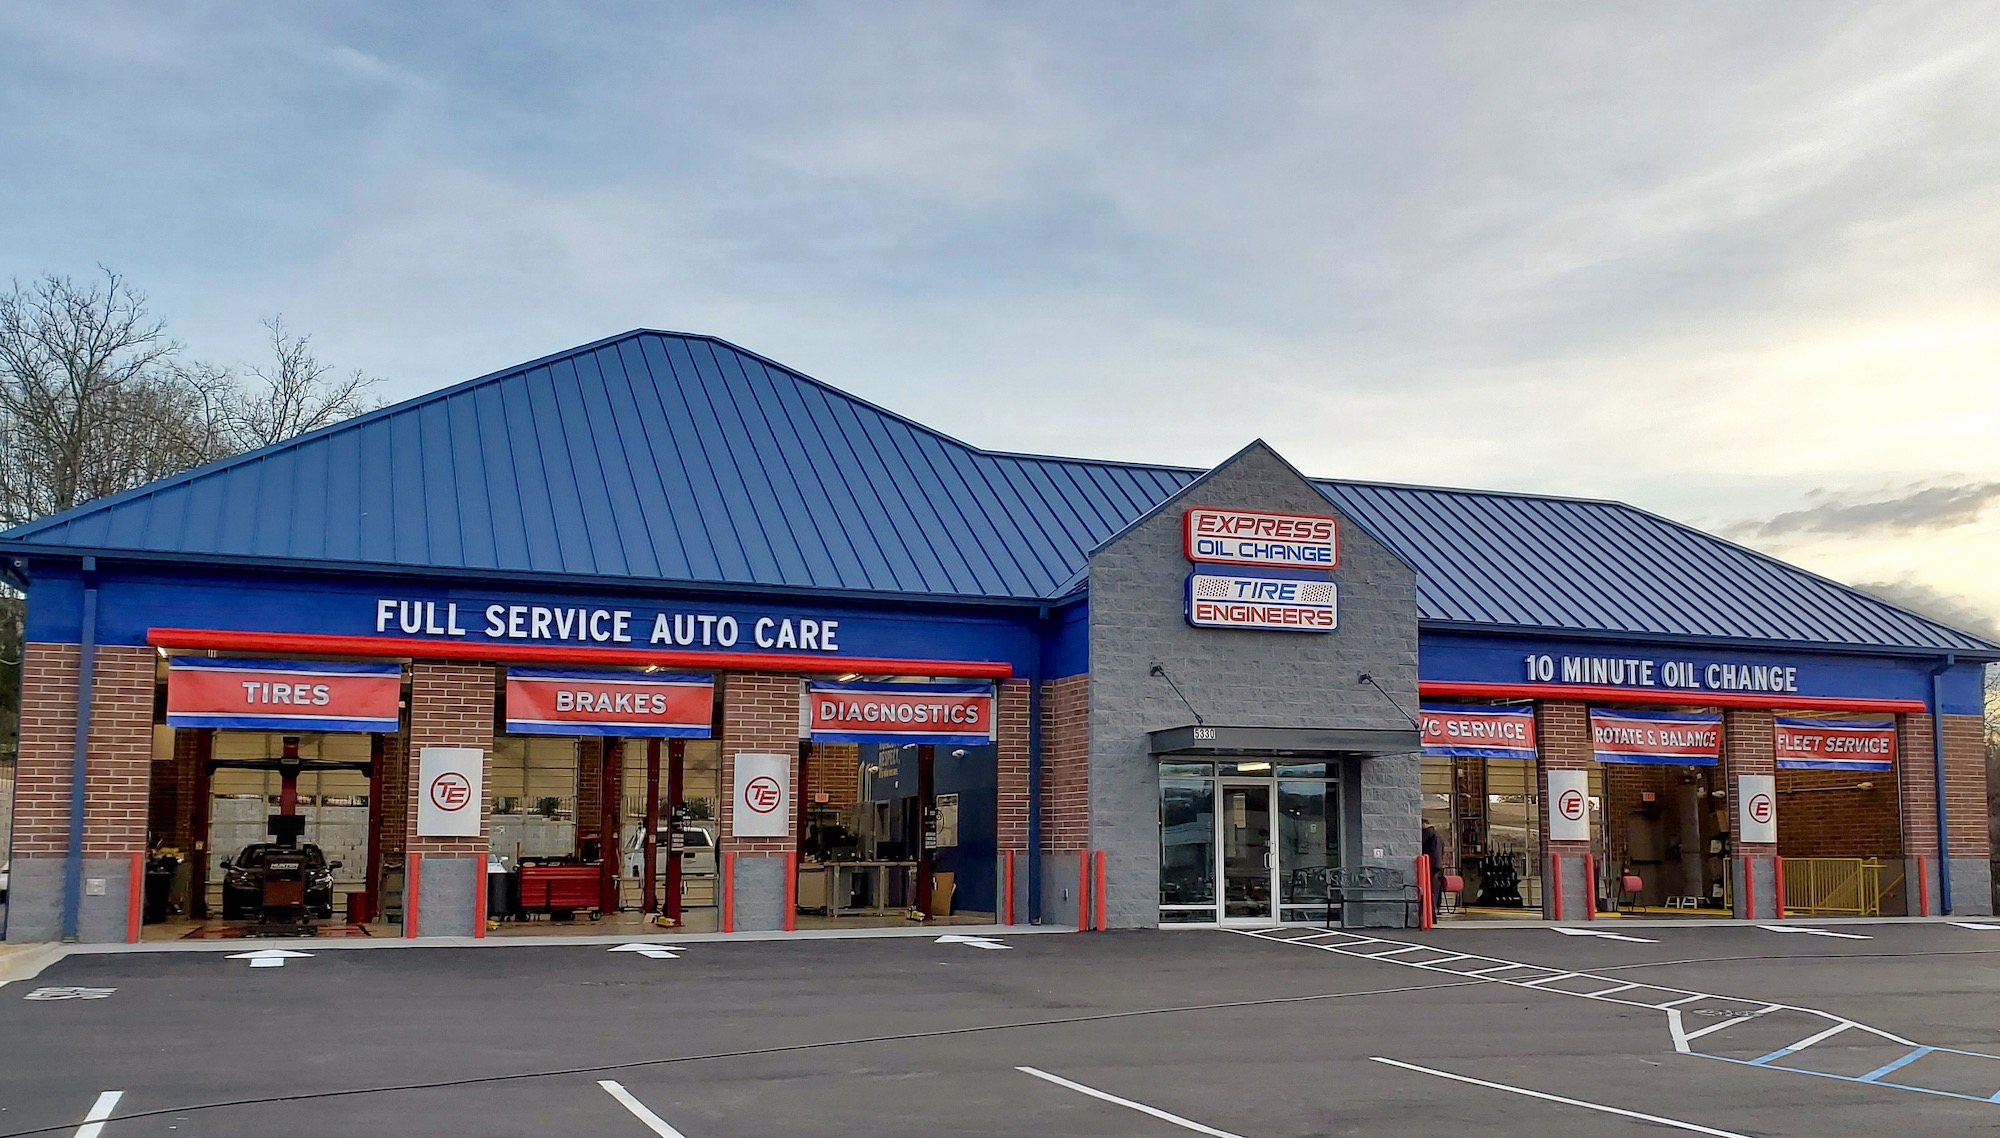 Express Oil Change & Tire Engineers at Taylors, SC - North Hampton Market store